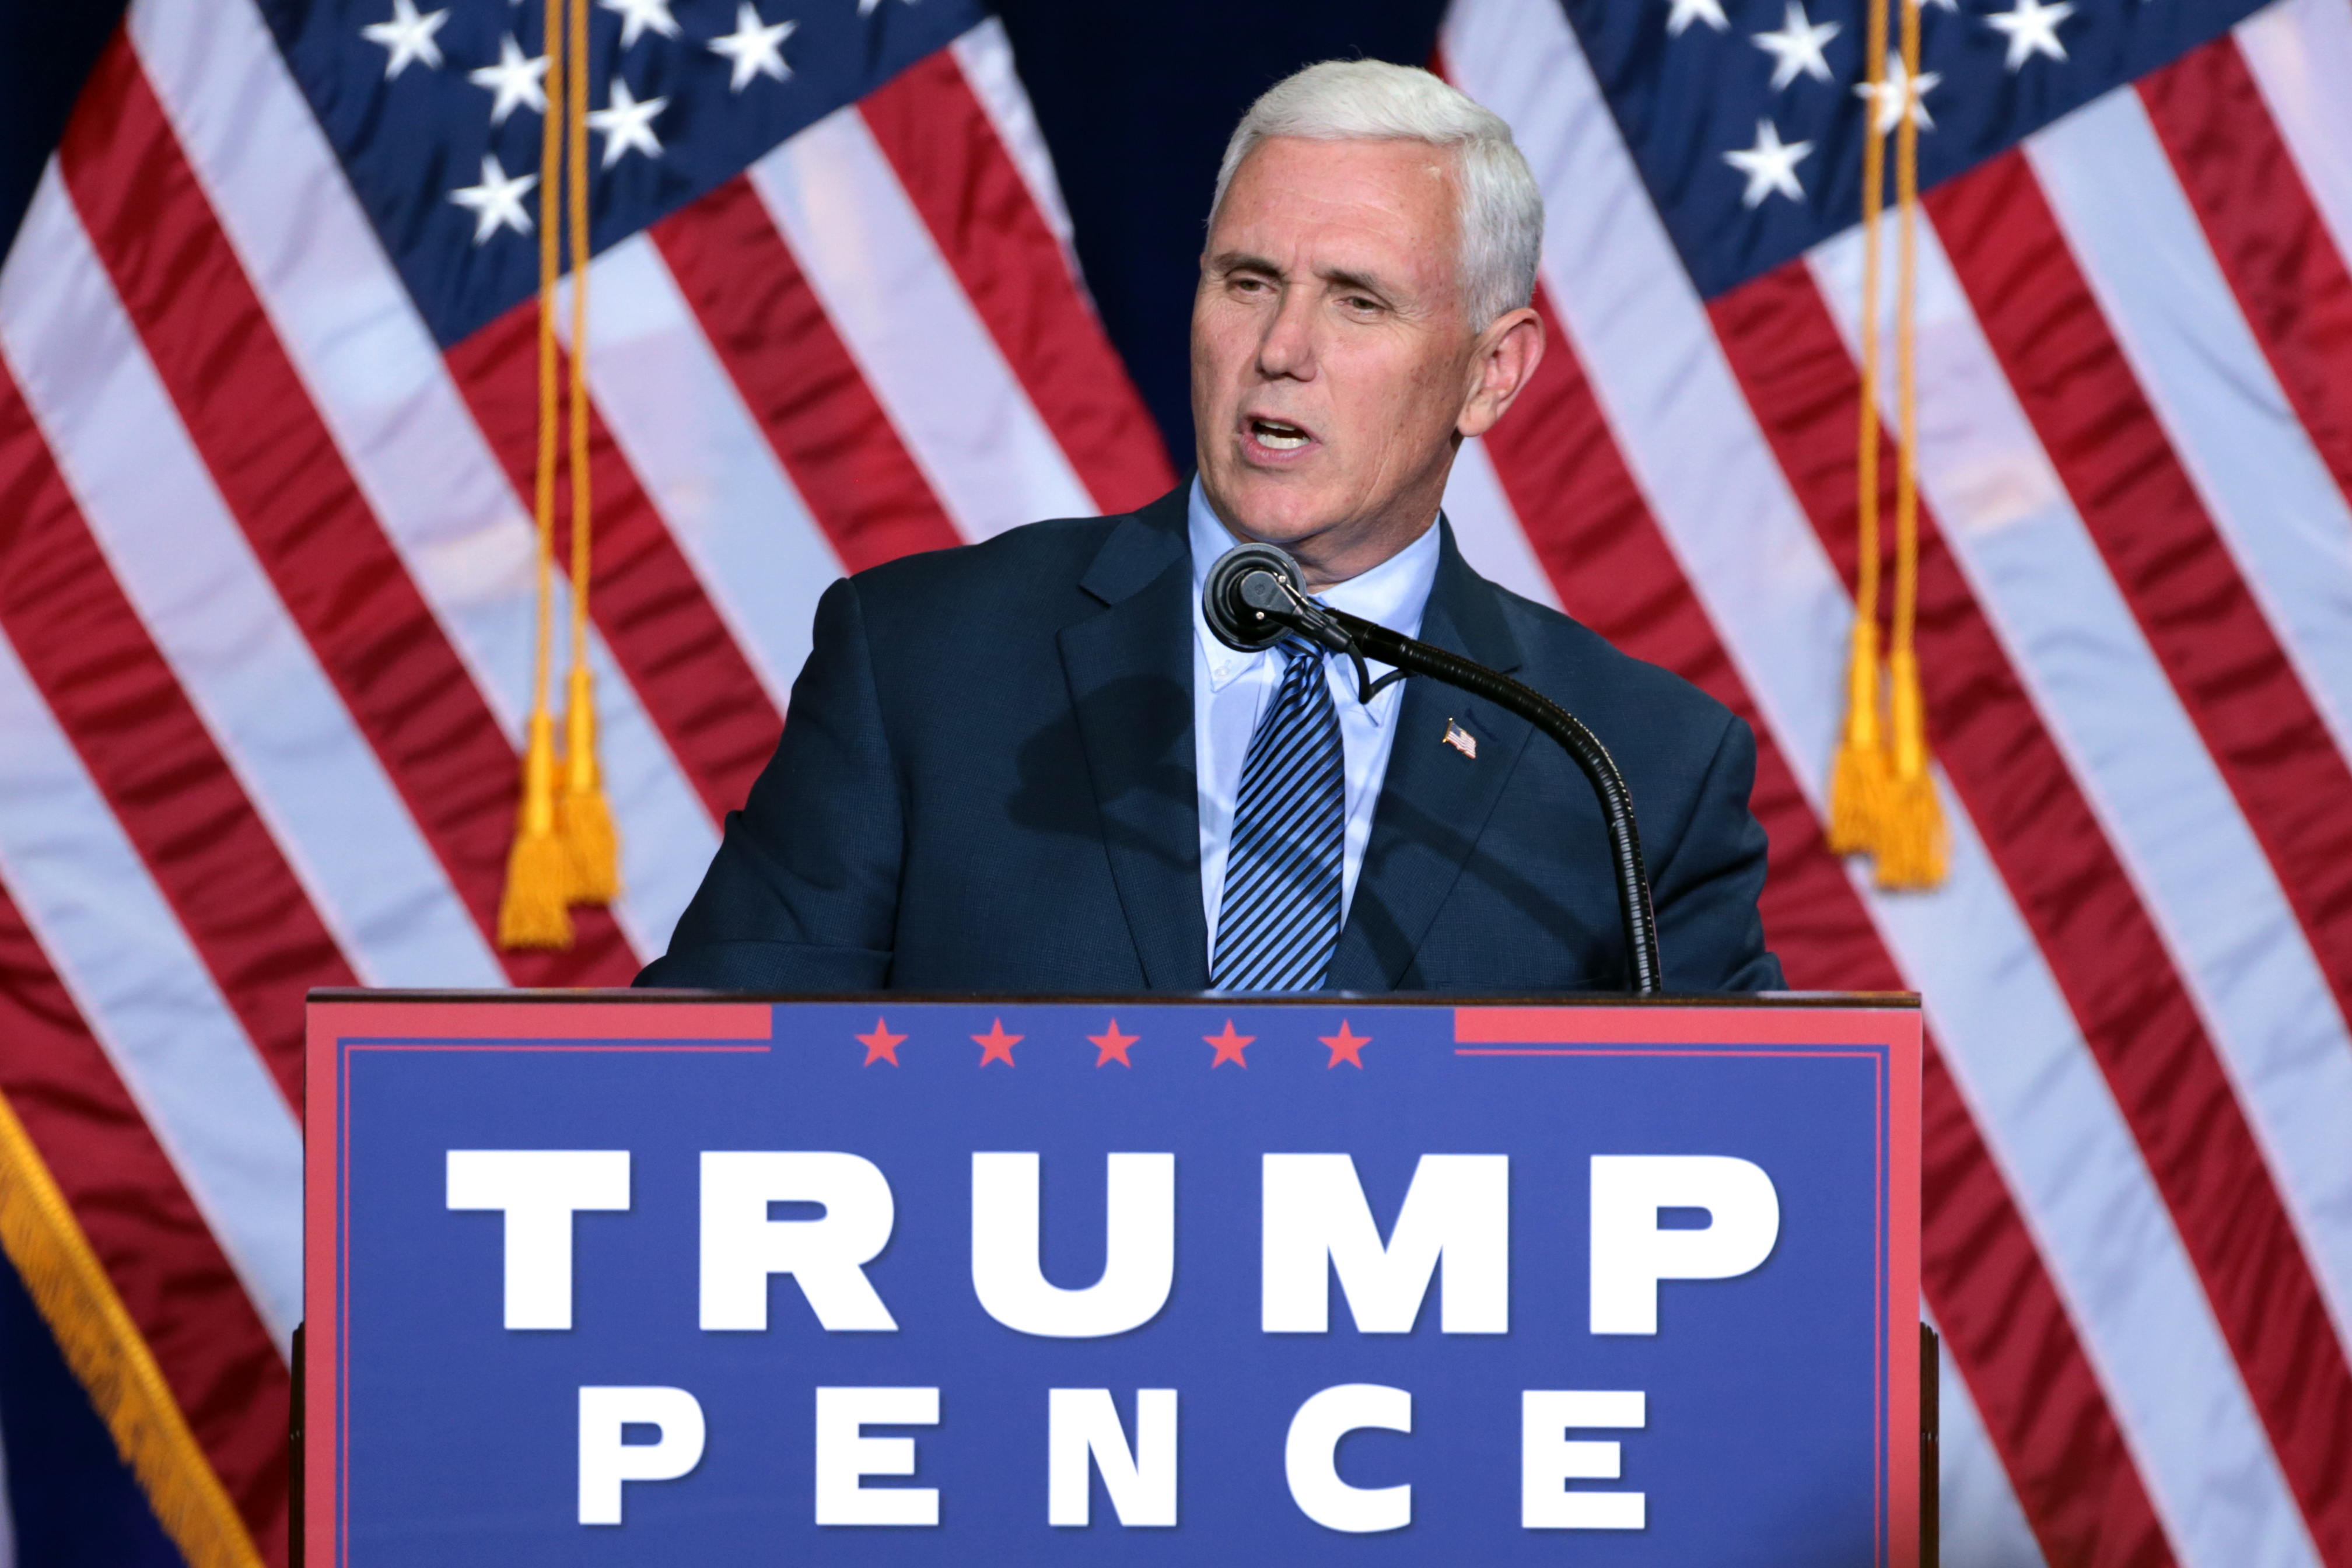 Mike Pence holds the Trump Card